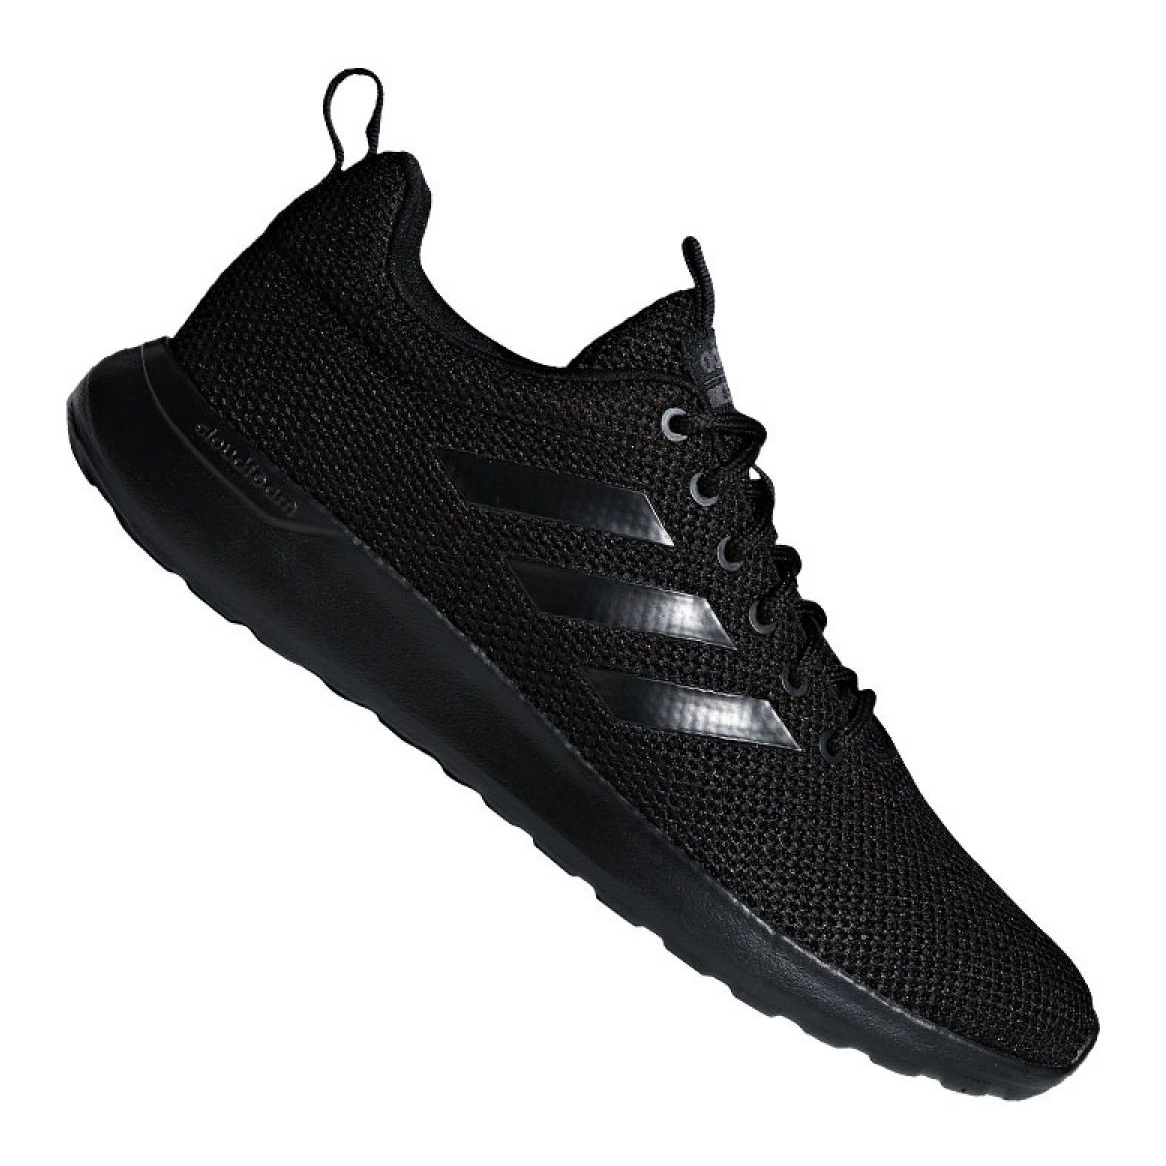 Details about Adidas Lite Racer Cln M F34574 shoes black